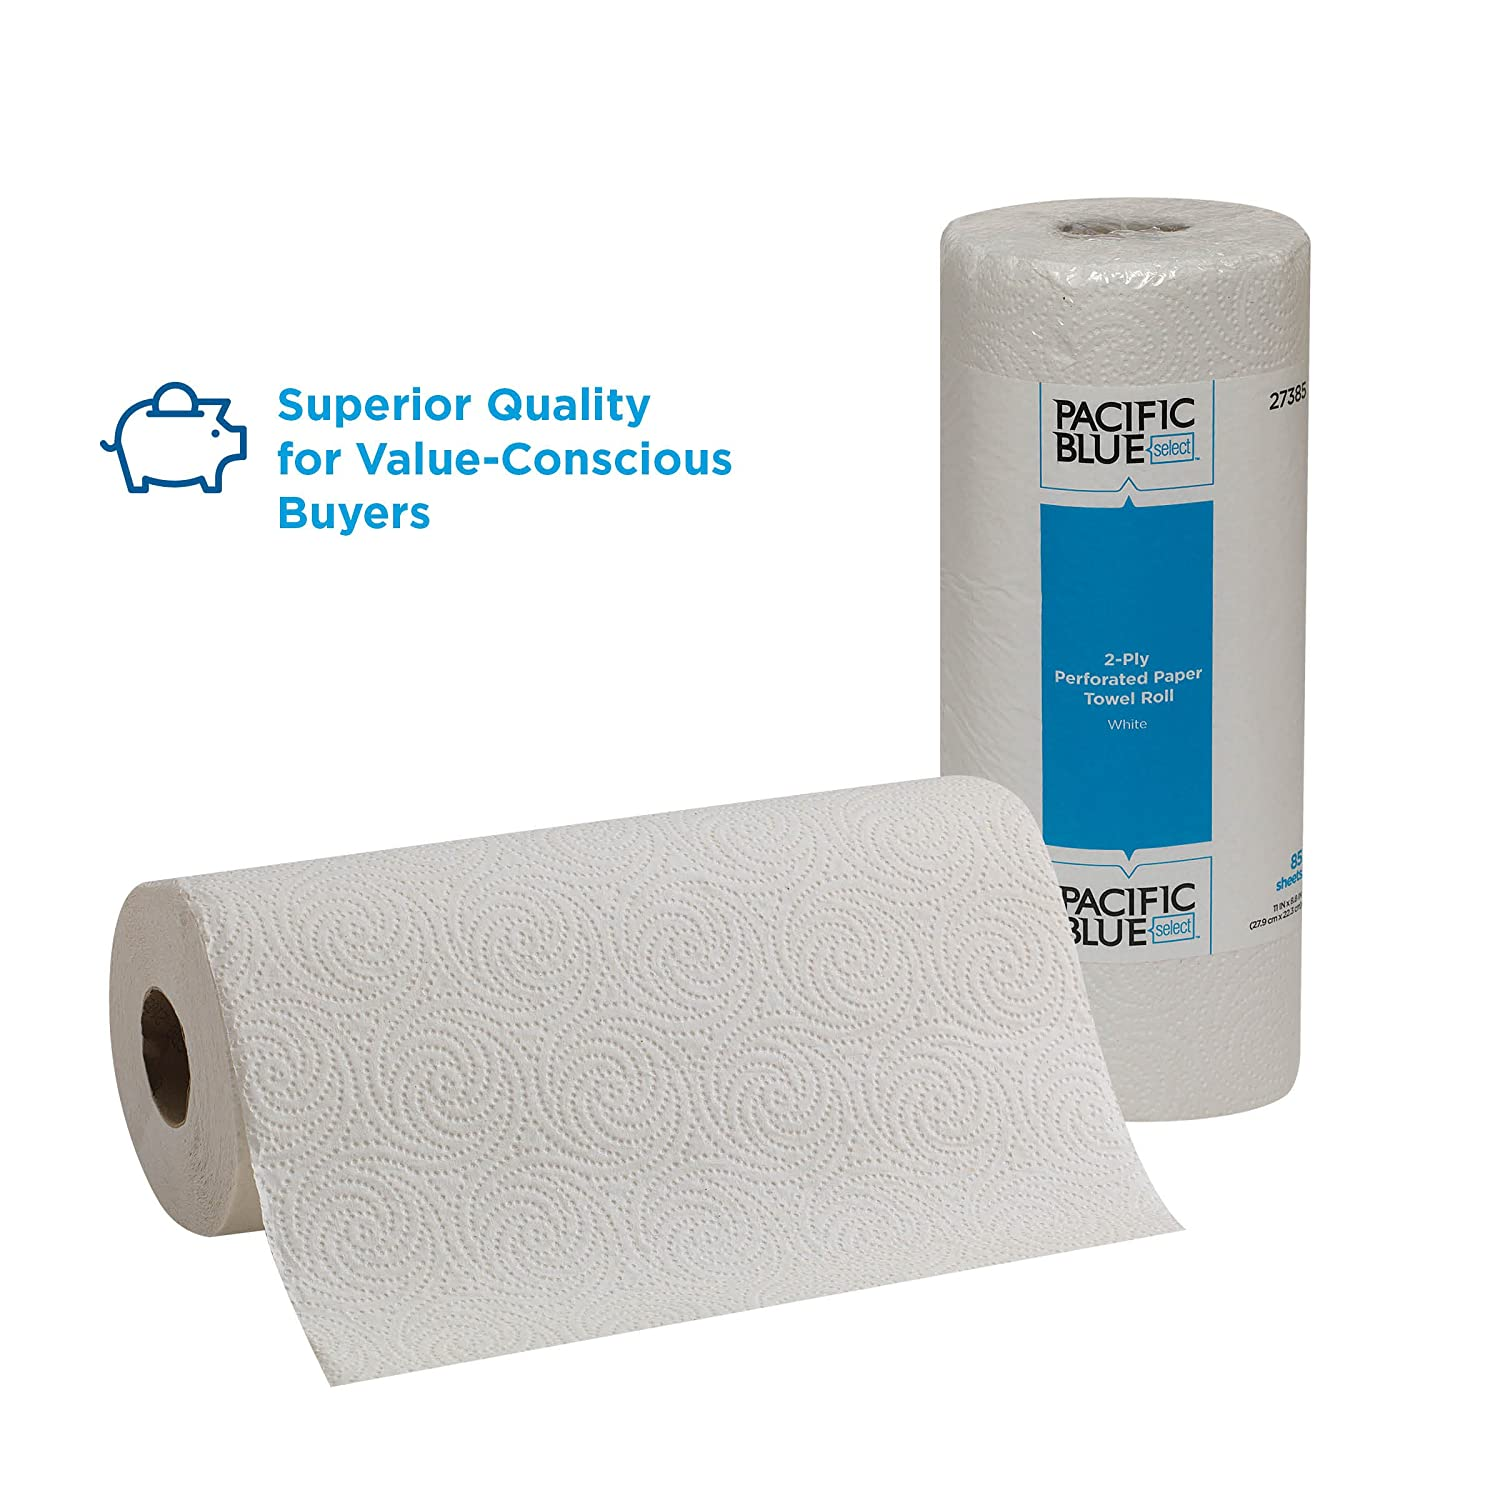 amazoncom pacific blue select 2 ply perforated paper towel roll previously branded preference by gp pro white 27385 85 sheets per roll 30 rolls per - Paper Towel Roll